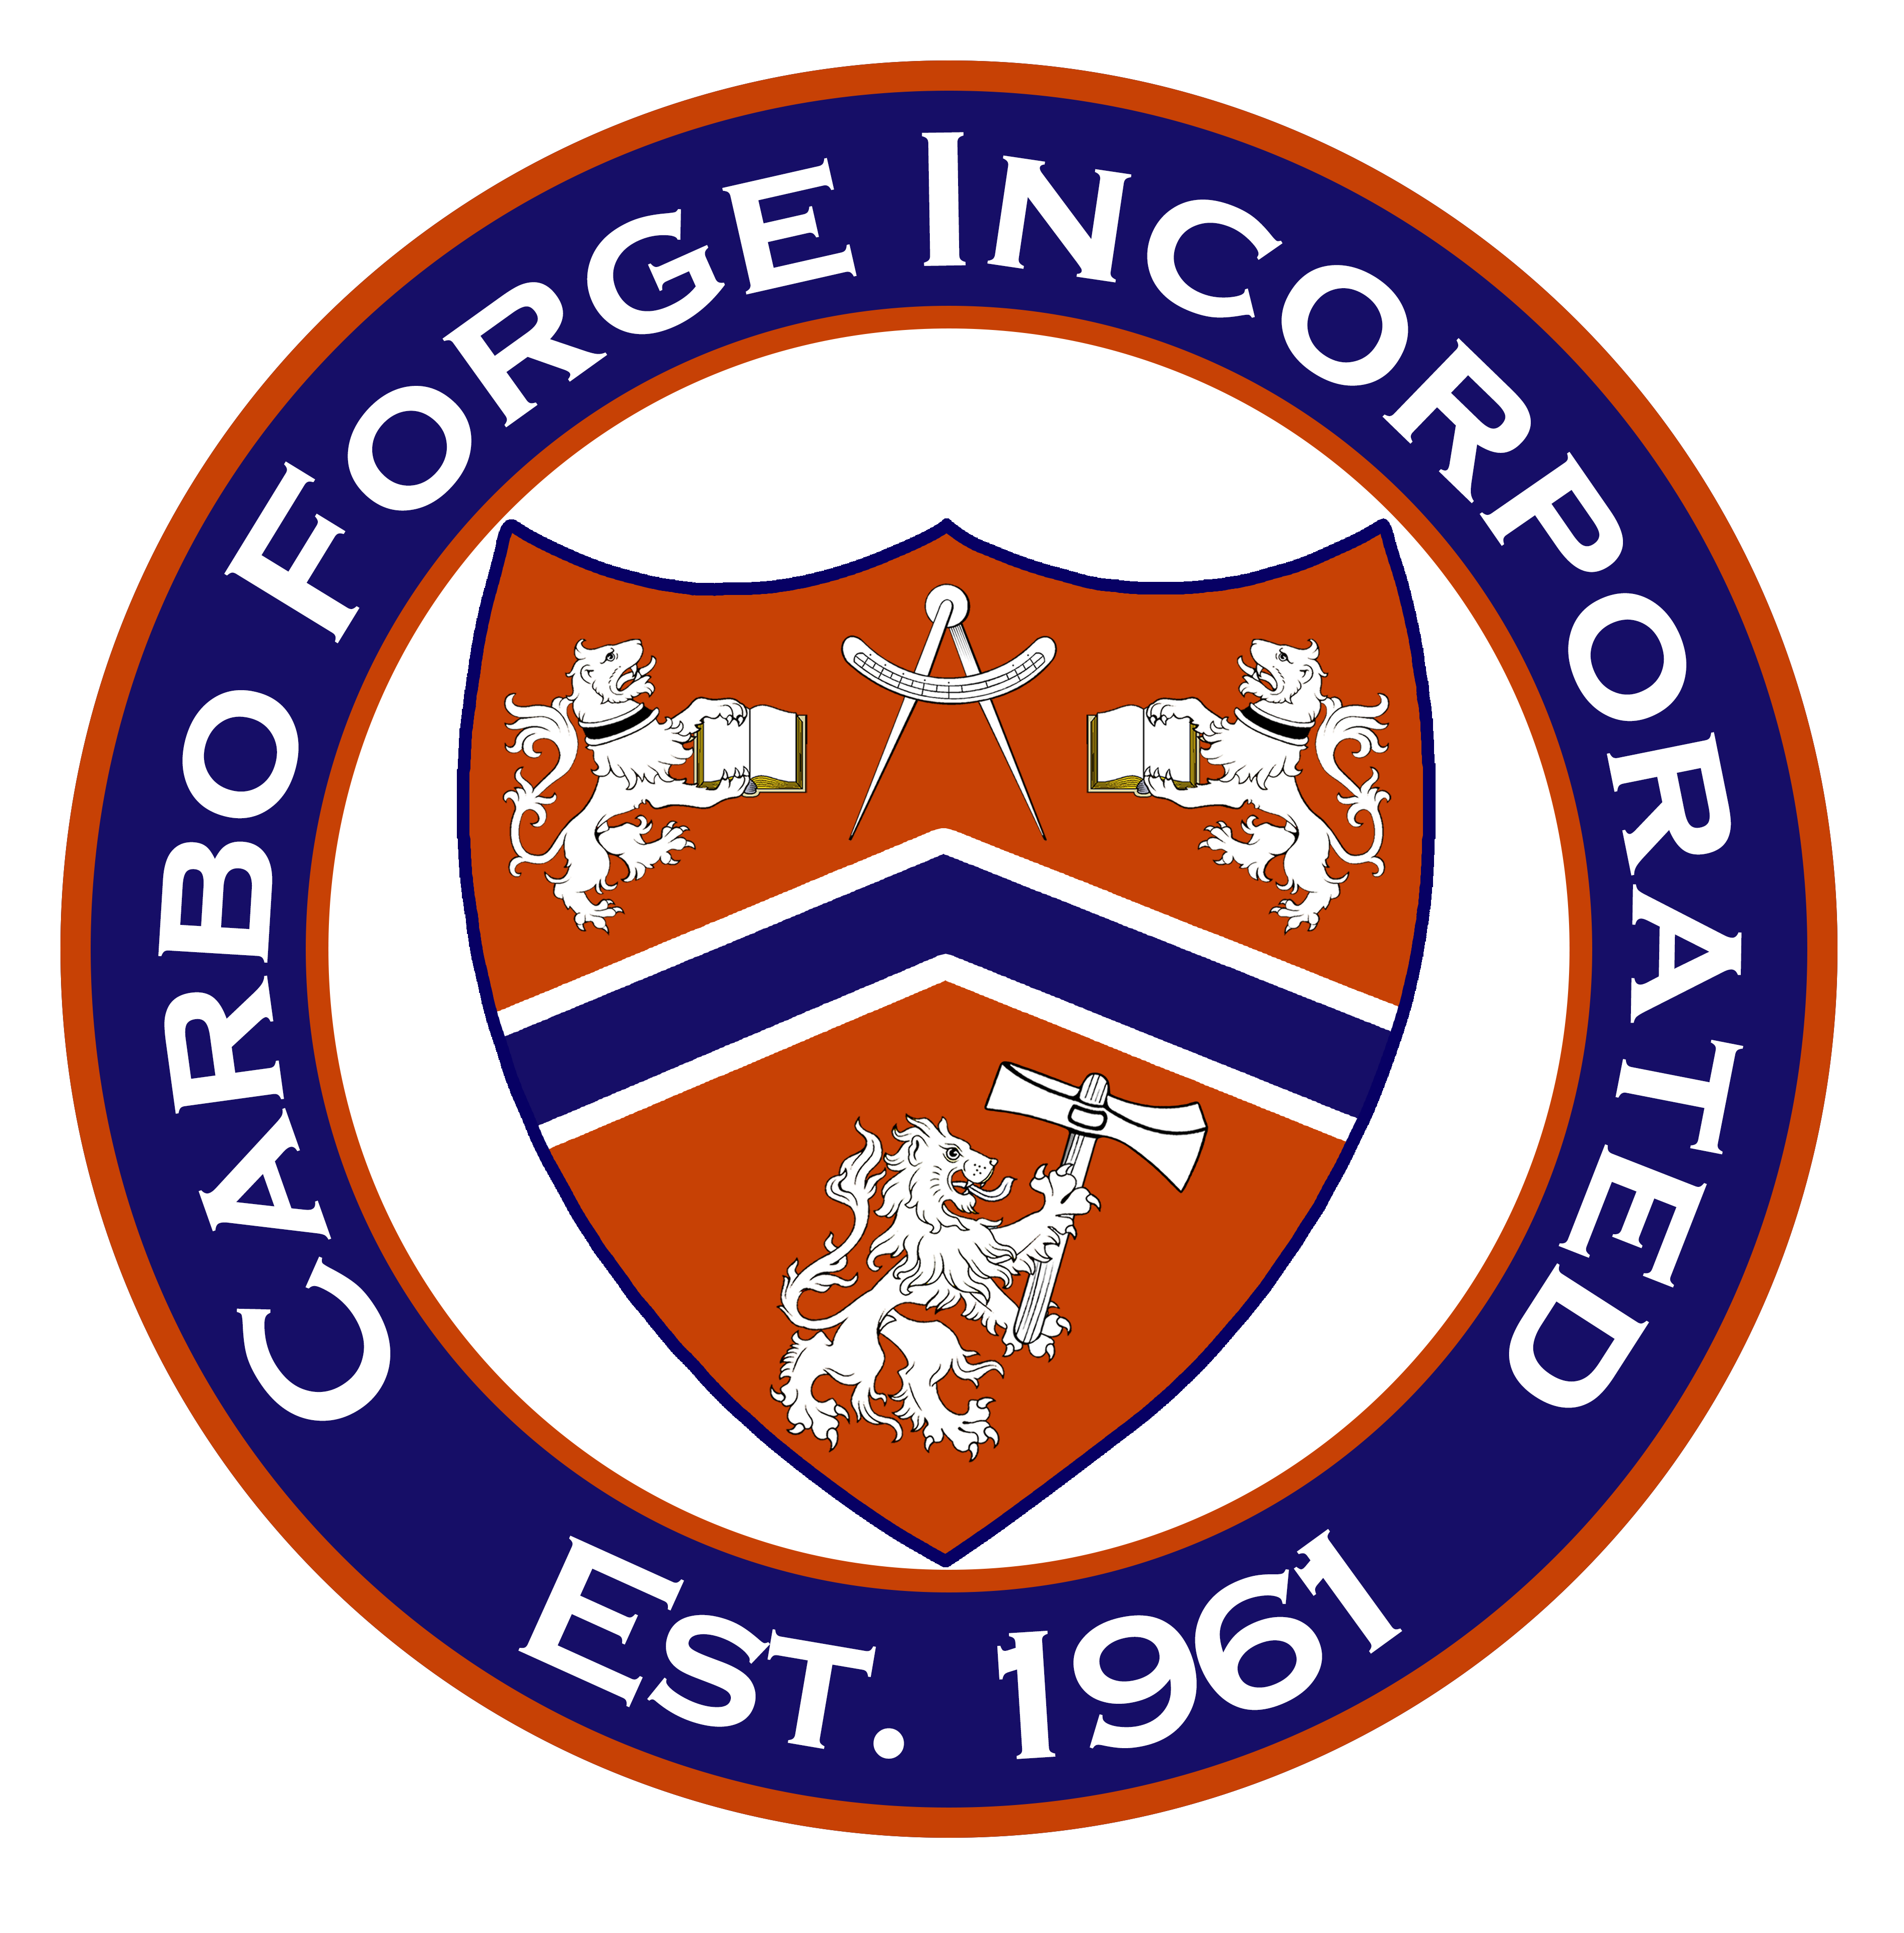 Carbo Forge Inc. Seal Logo